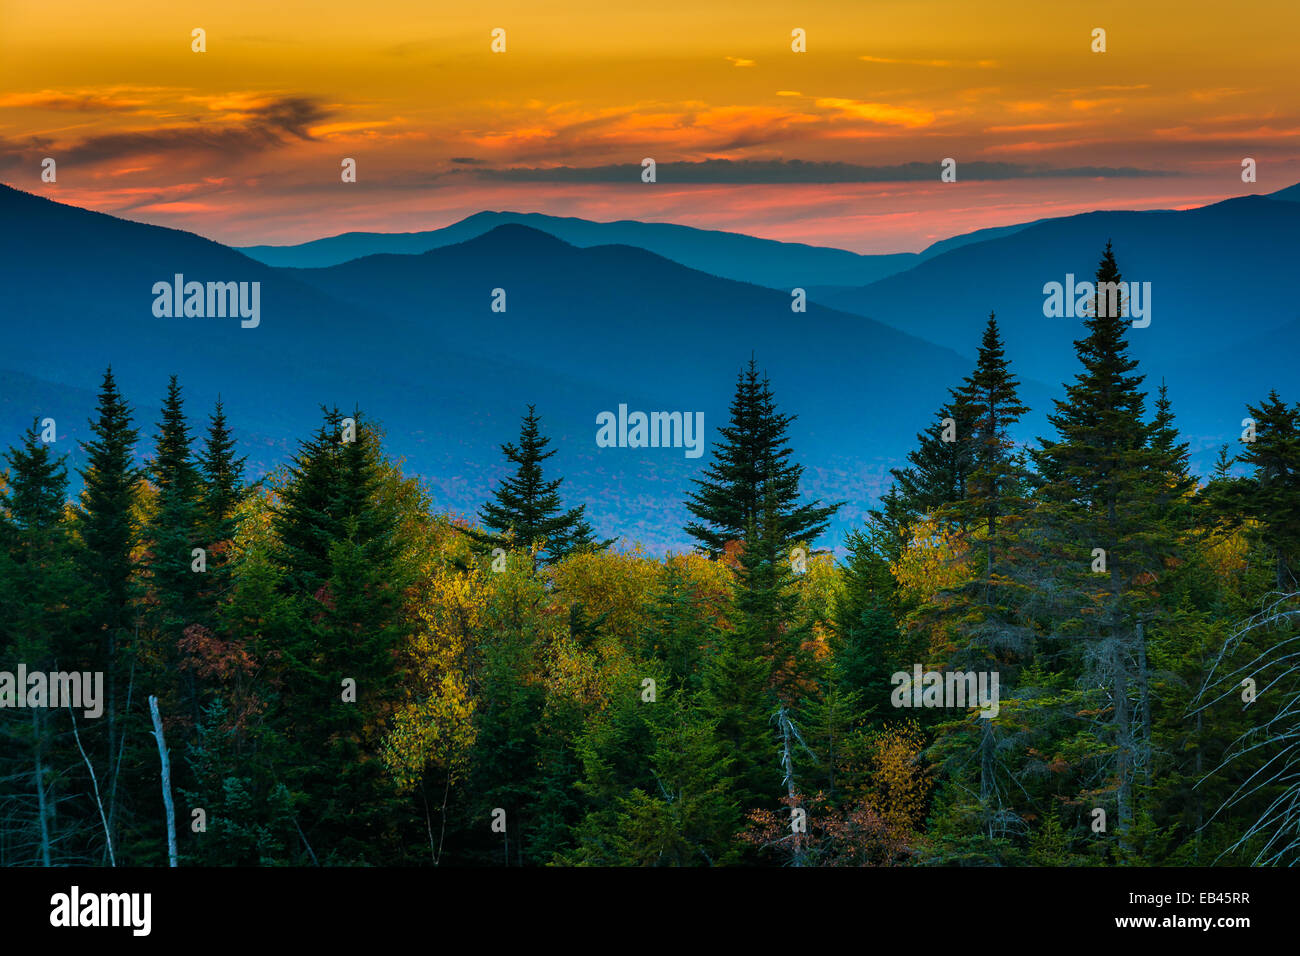 kancamagus highway stock photos & kancamagus highway stock images